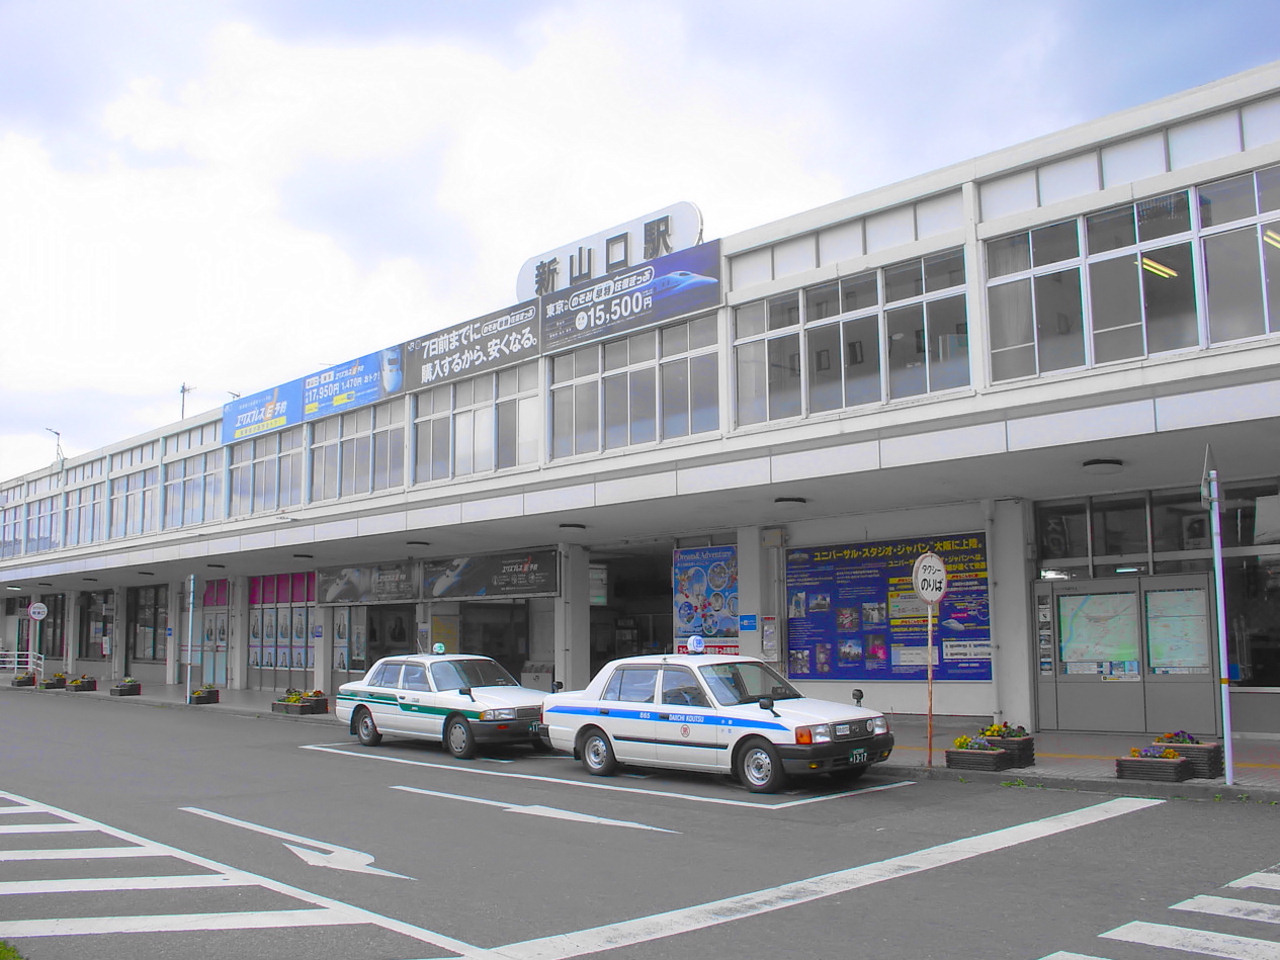 http://upload.wikimedia.org/wikipedia/commons/4/4b/West_Japan_Railway_-_Shin-Yamaguchi_Station_-_01.JPG